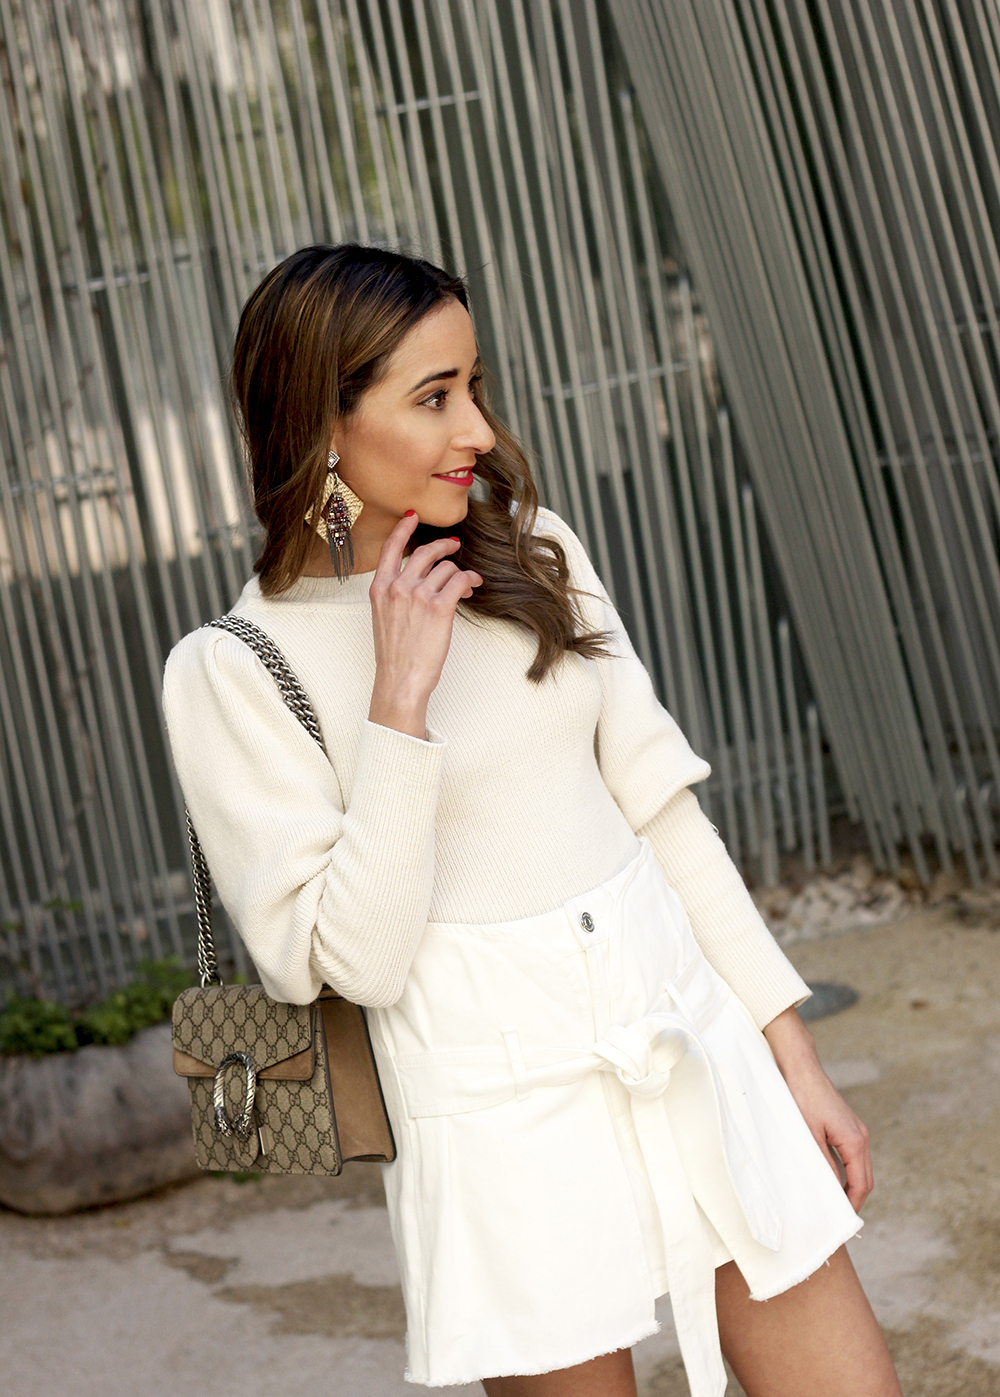 White skirt white sweater blue light mules uterqüe gucci bag céline sunnies spring outfit style outfit09